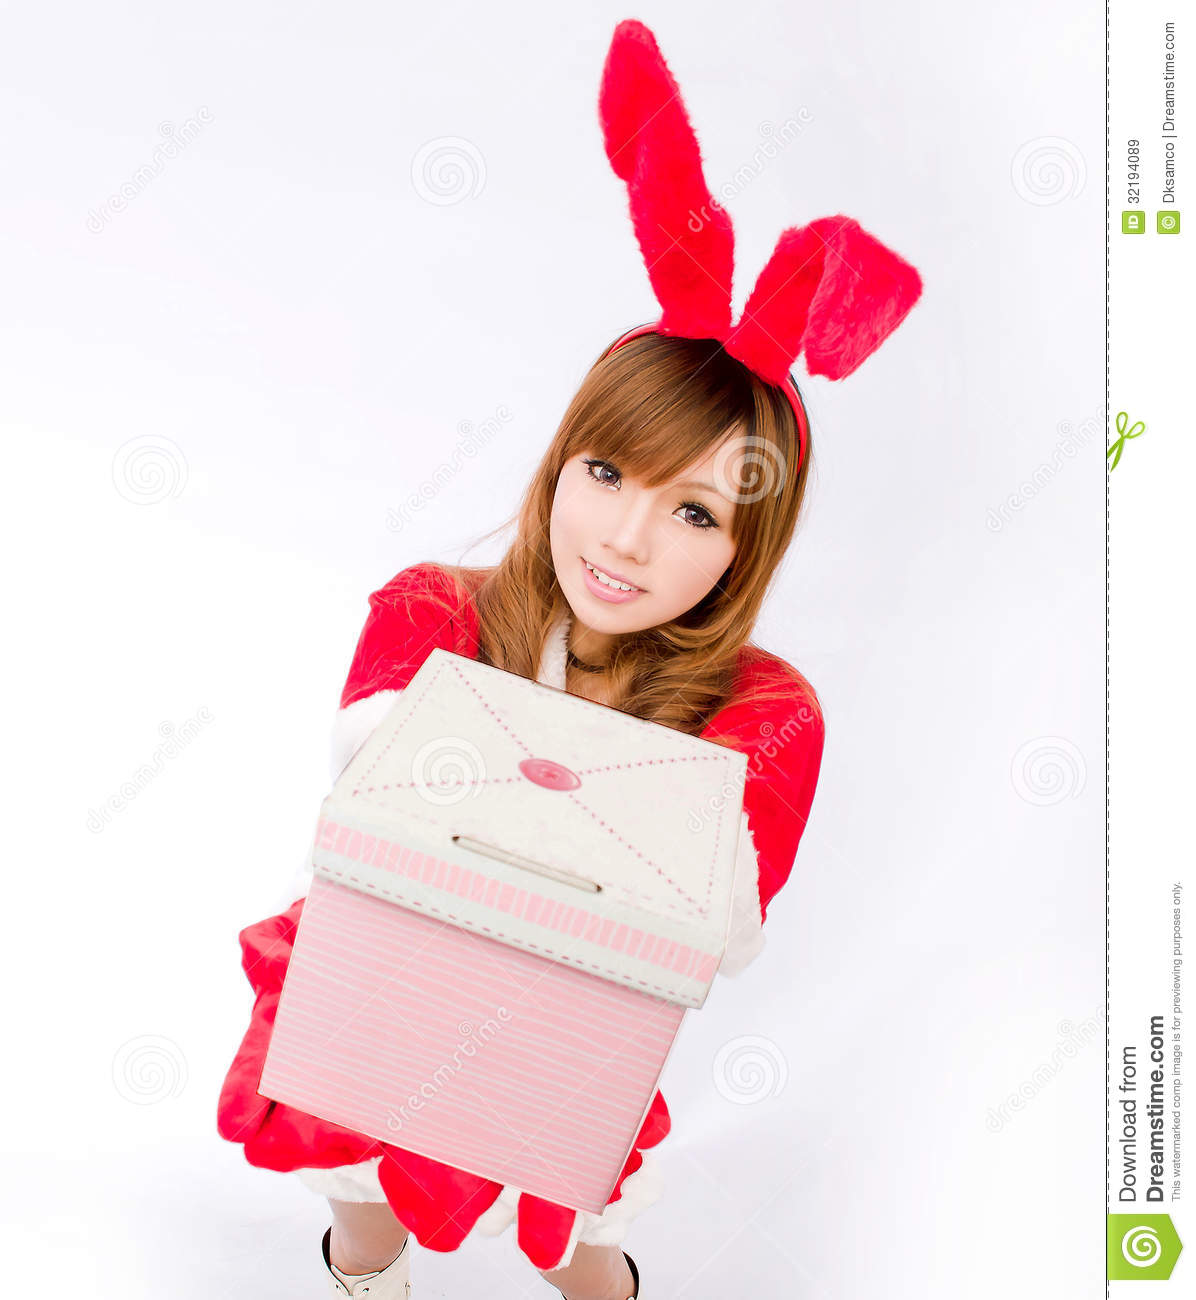 Christmas bunny girl japanese style gift box stock image for Japanese inspired gifts